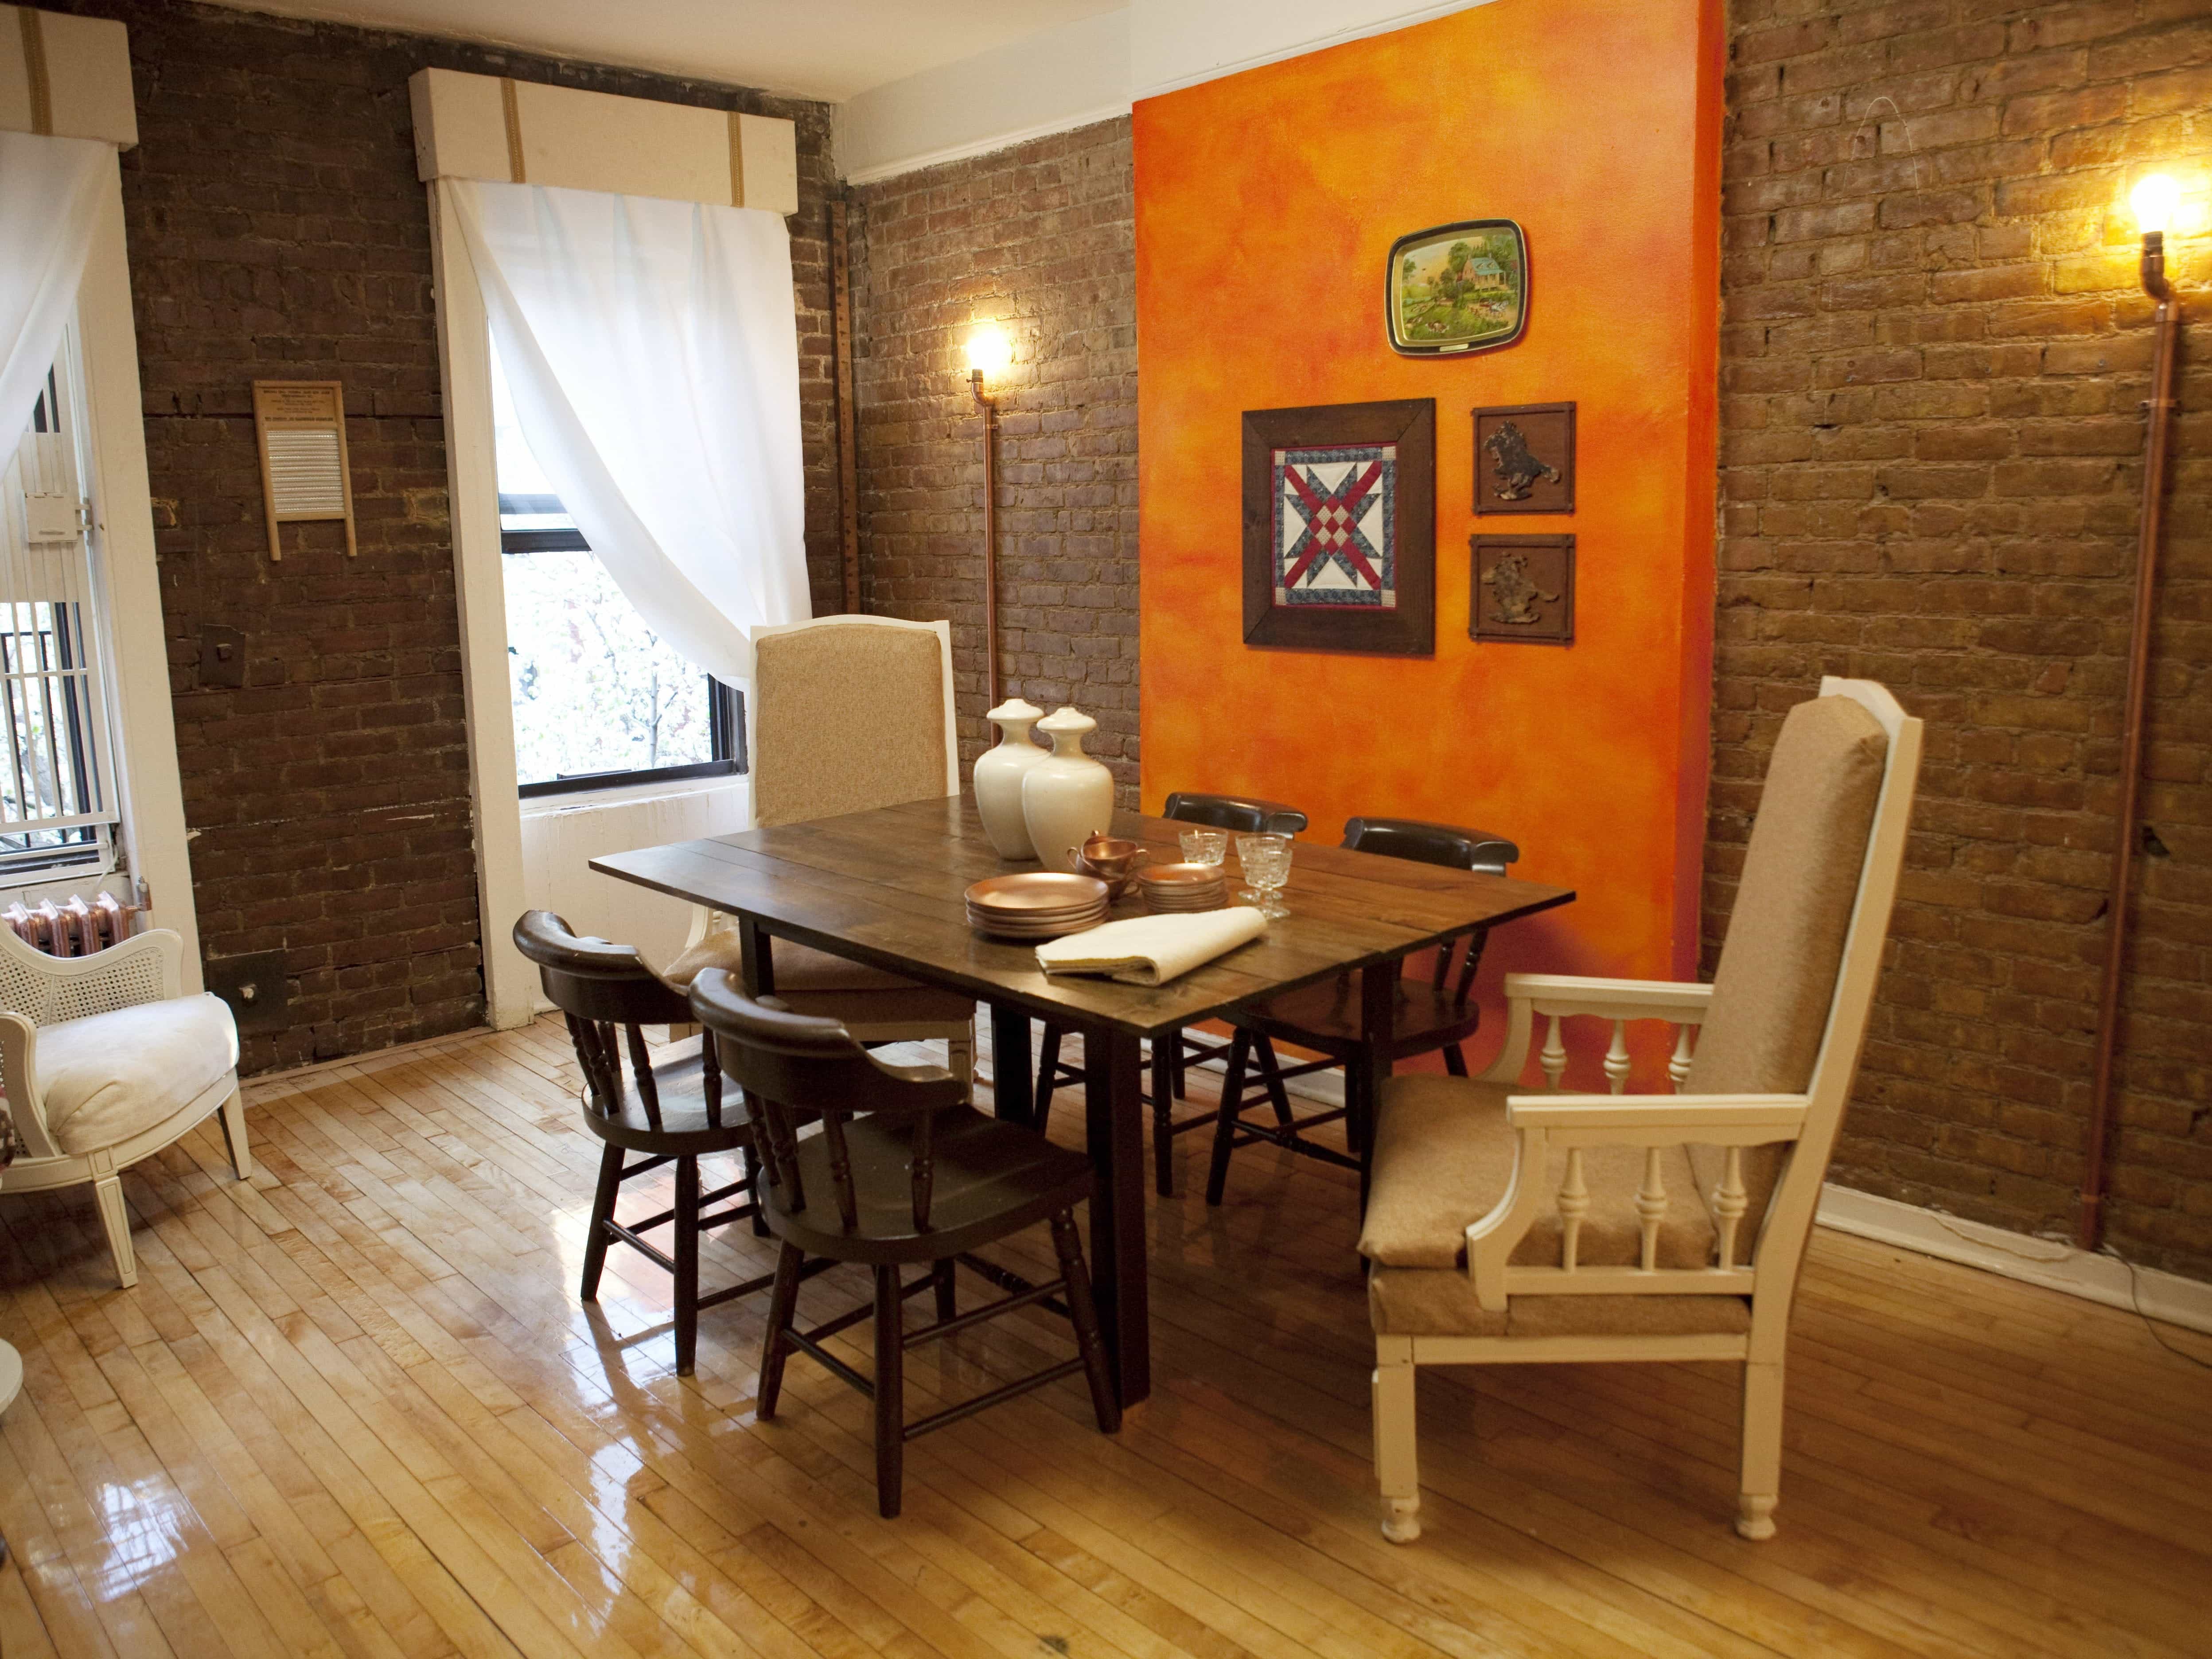 Contemporary Brick Dining Room With Orange Accent Wall (Image 4 of 30)